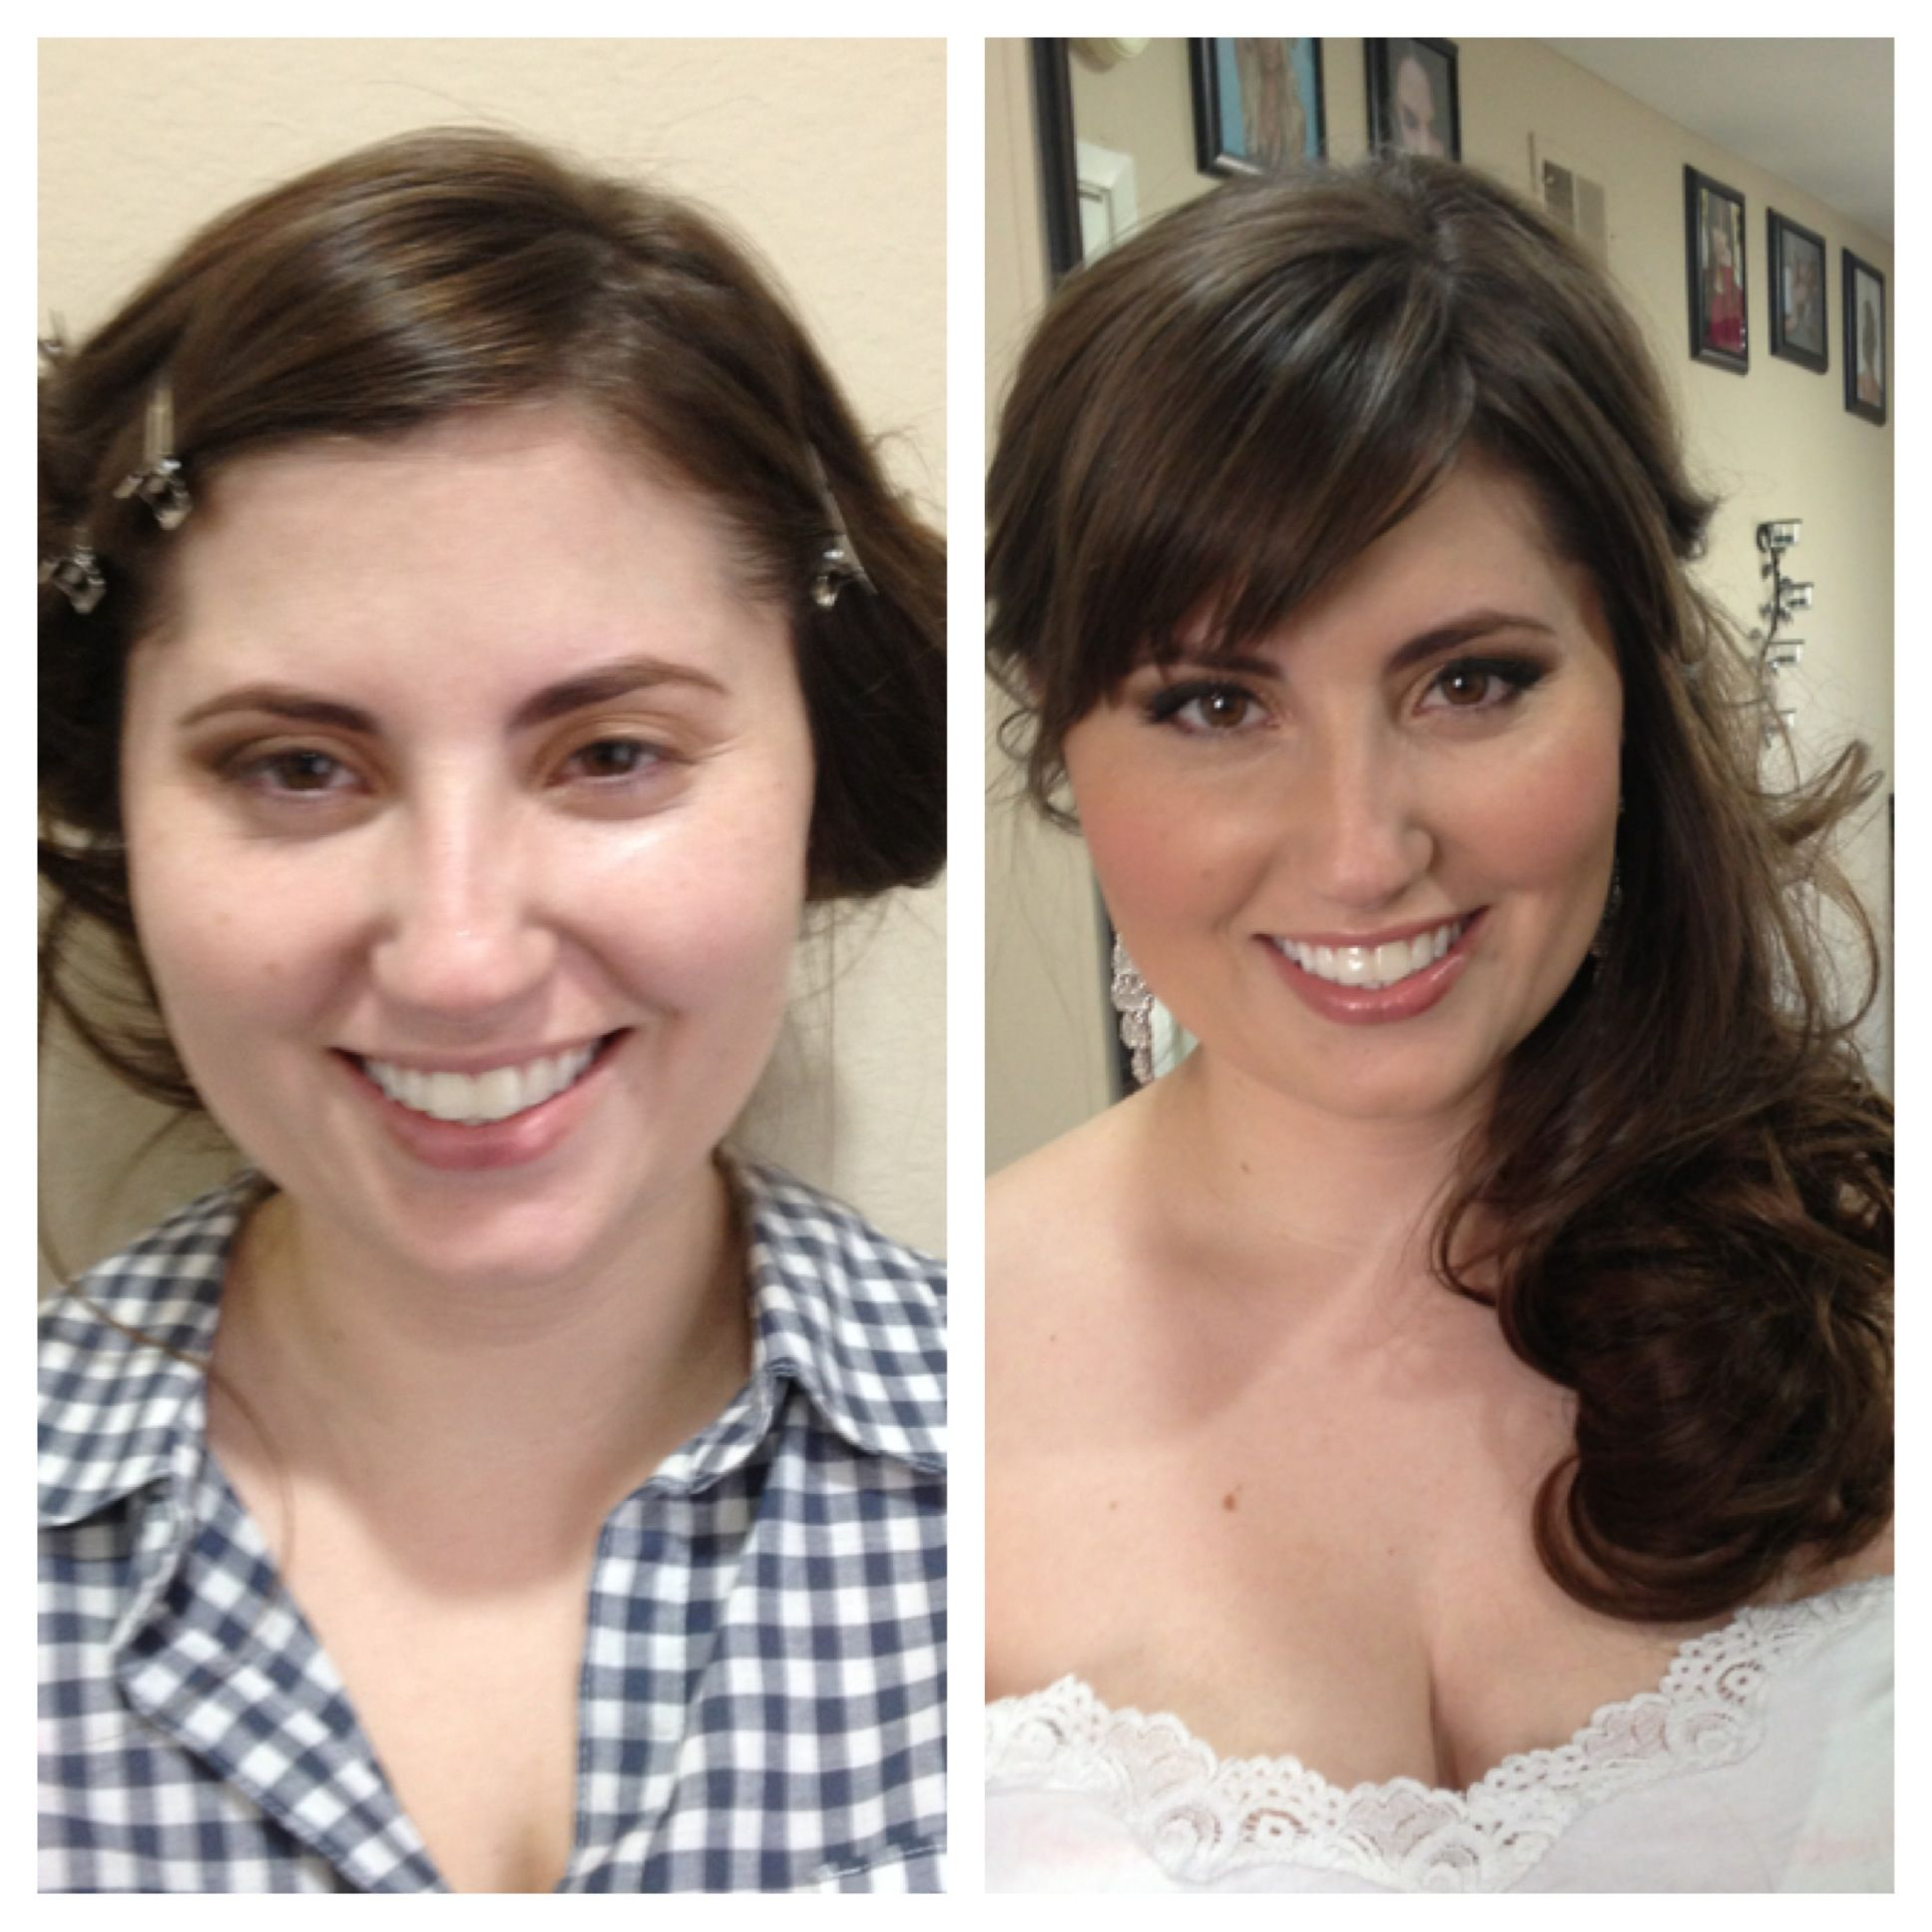 Bridal Hair And Makeup Before And After Elite Makeup Designs Calabasas Ca Http Www Elitemakeupd Bridal Hair And Makeup Hair Makeup Makeup Portfolio